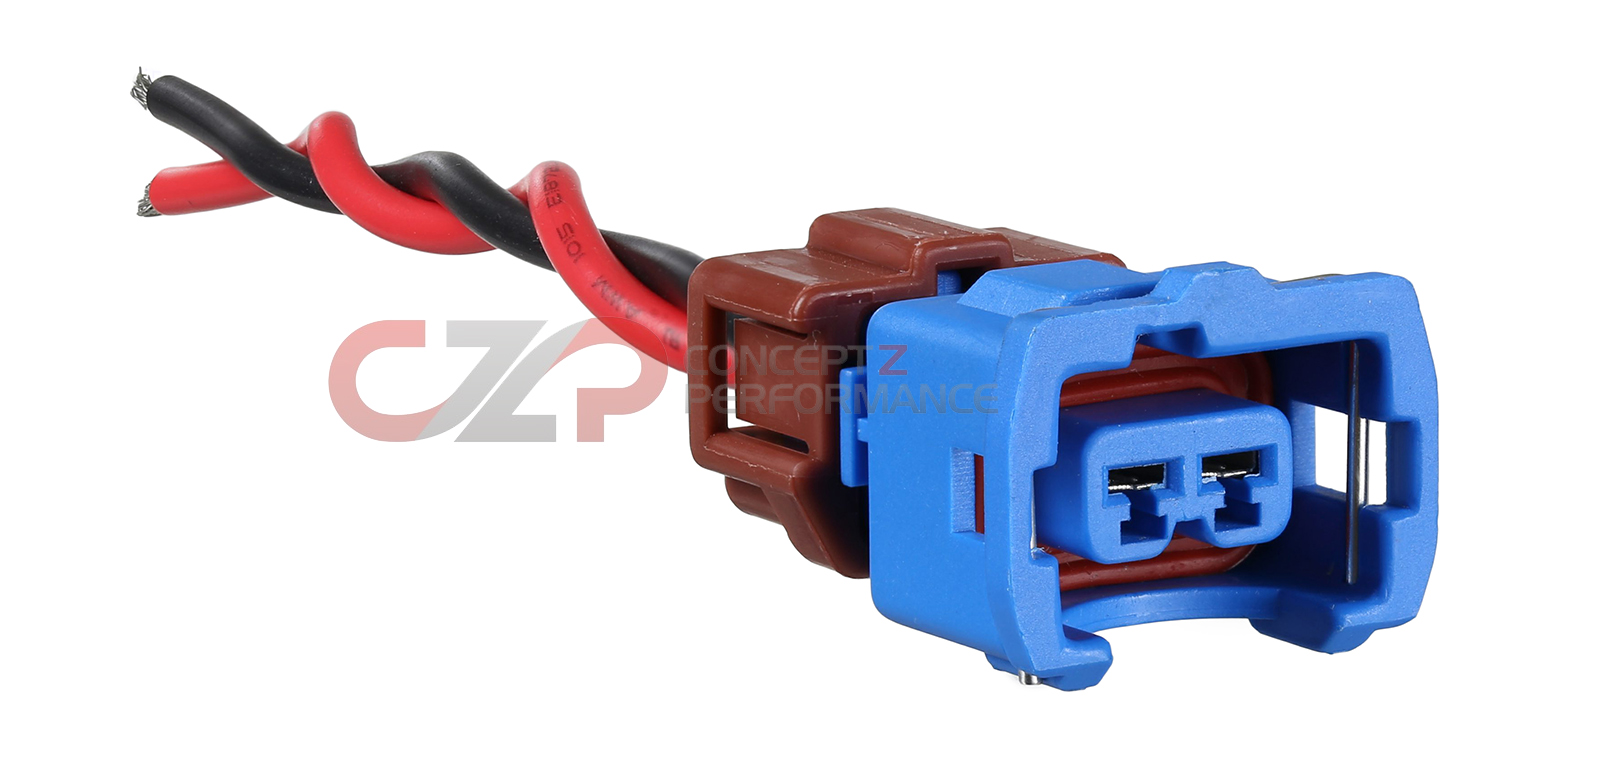 CZP Fast Idle Control Device (FICD) & Air Regulator IACV Connector - Nissan 300ZX 90-96 Z32